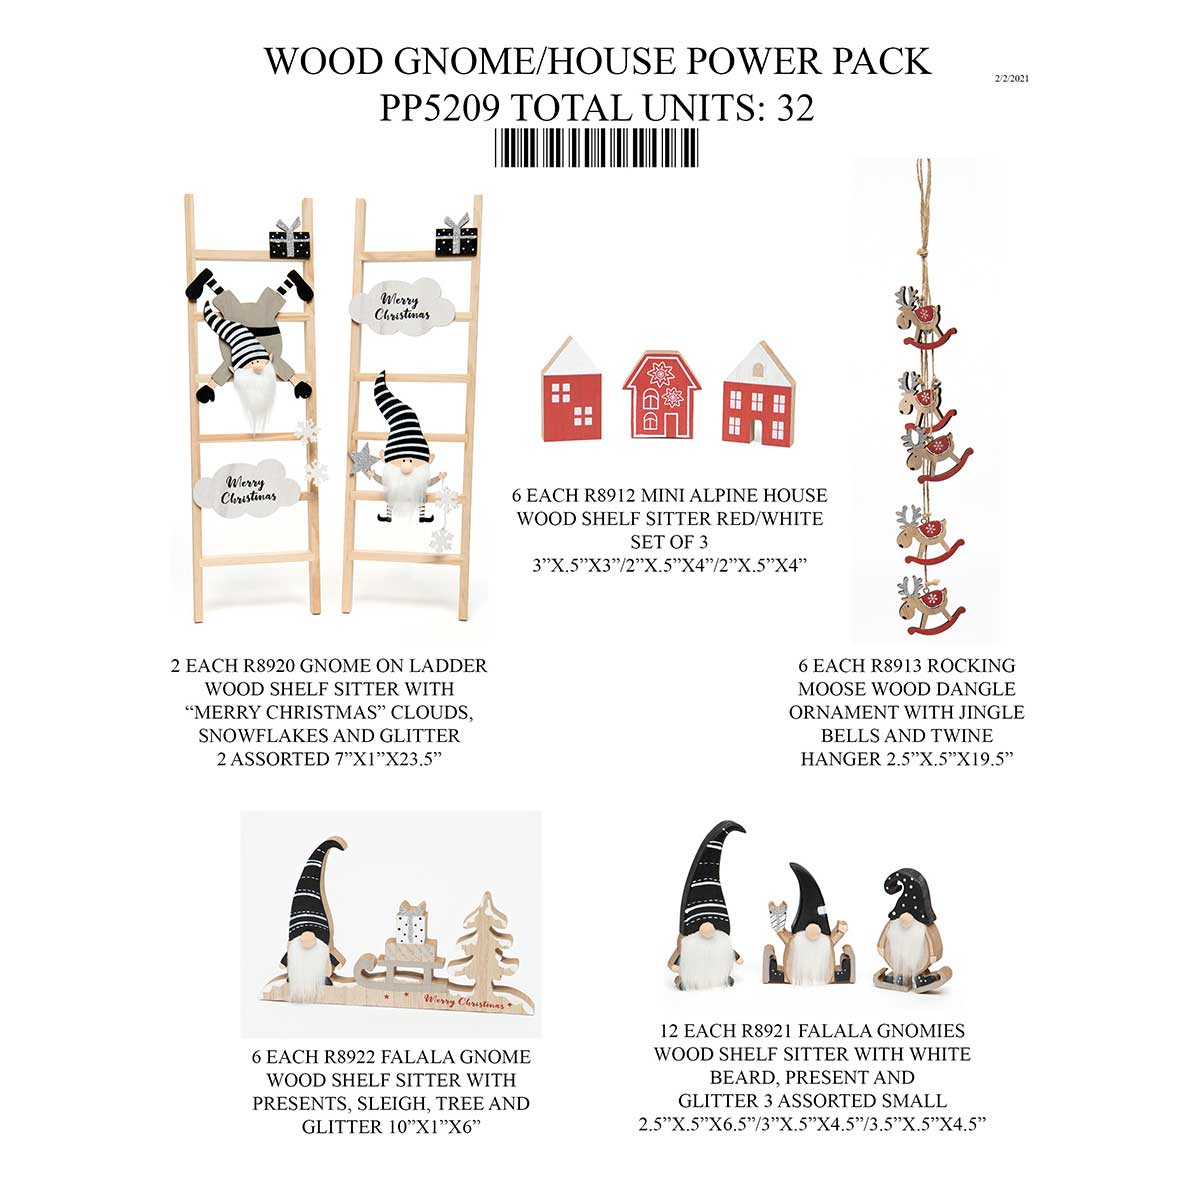 WOOD HOUSE/GNOME/ORNAMENT POWER PACK 32 UNITS PP5209